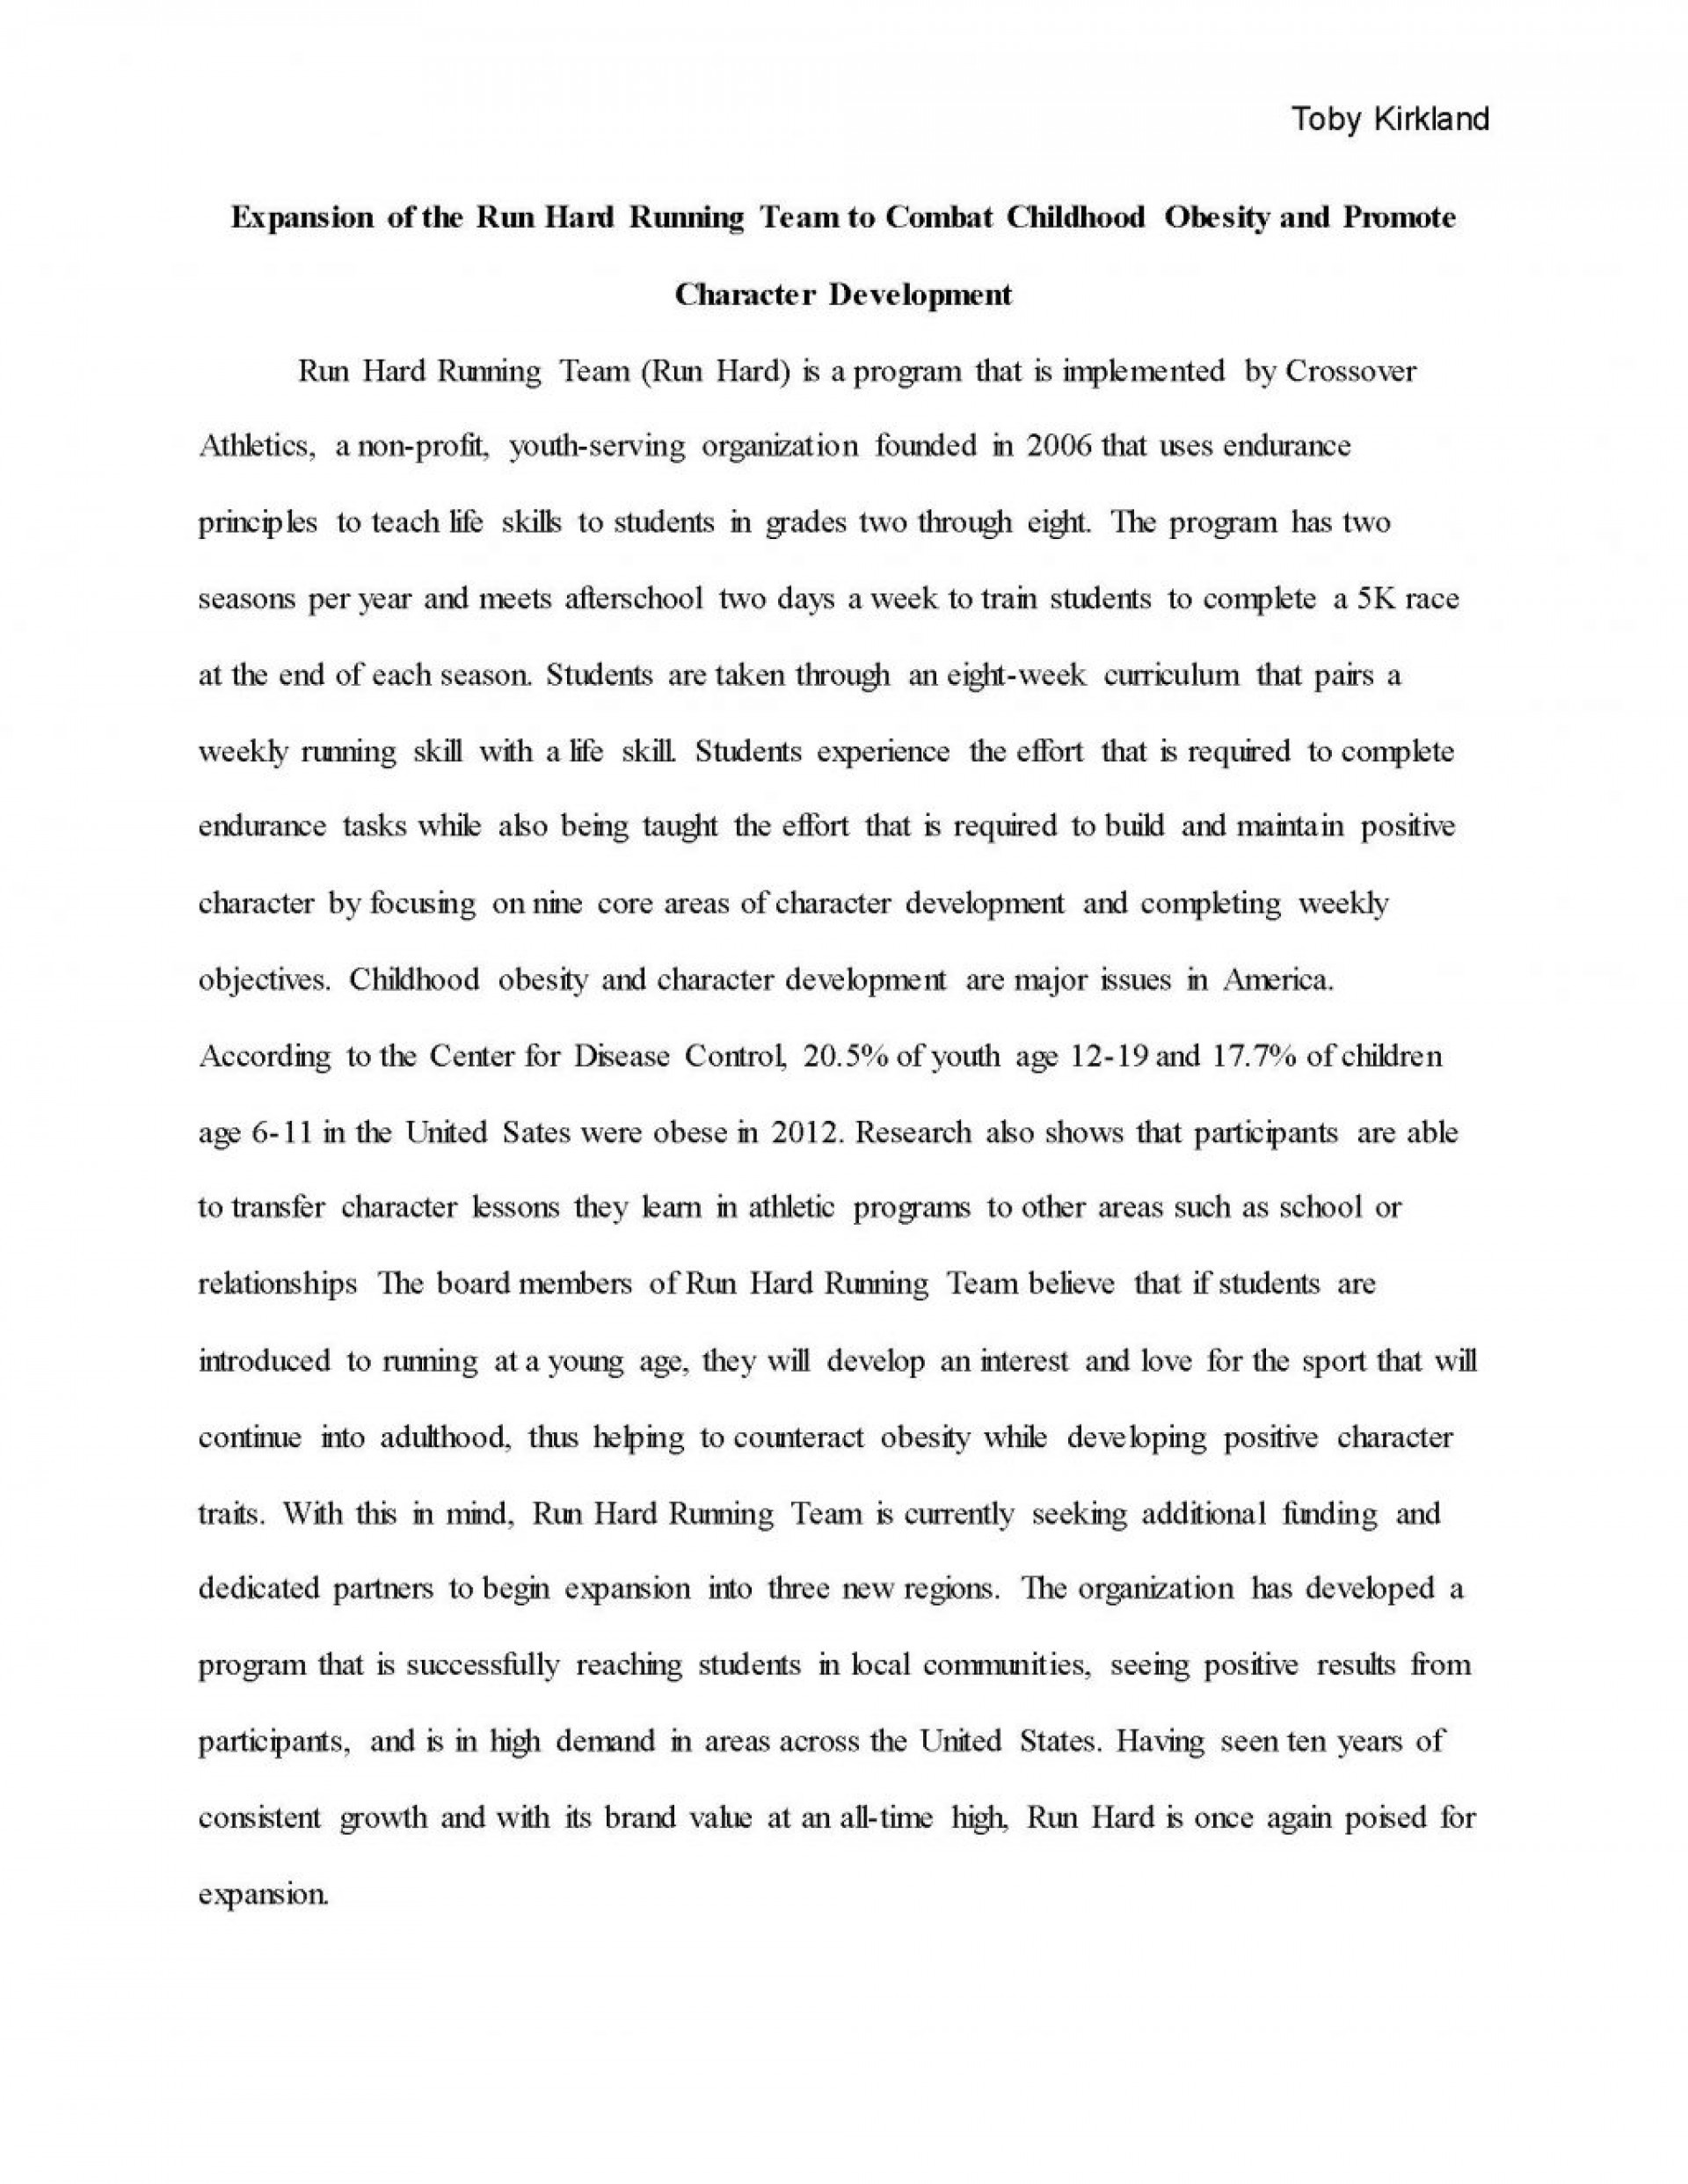 012 Childhood Obesity Research Paper Topics Essay Sample Barca Fontanacountryinn Com Child Example20 Awesome About 1920